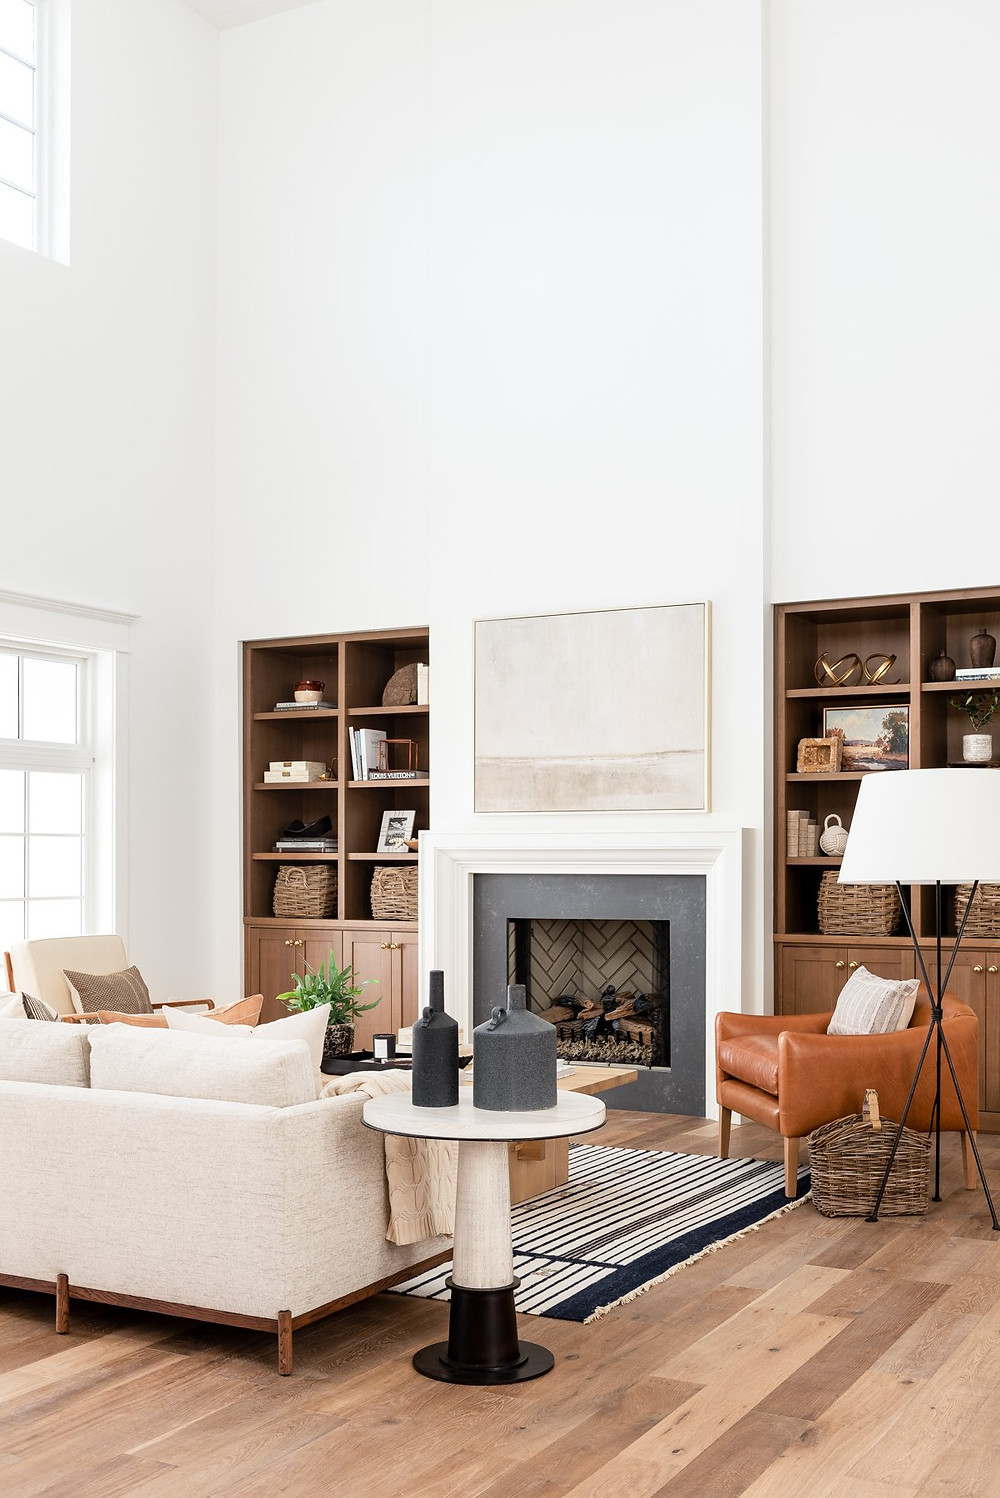 A modern farmhouse living room with a tall white fireplace with a black surround next to some natural wood built in shelves and a white cream sofa with a caramel leather chair.